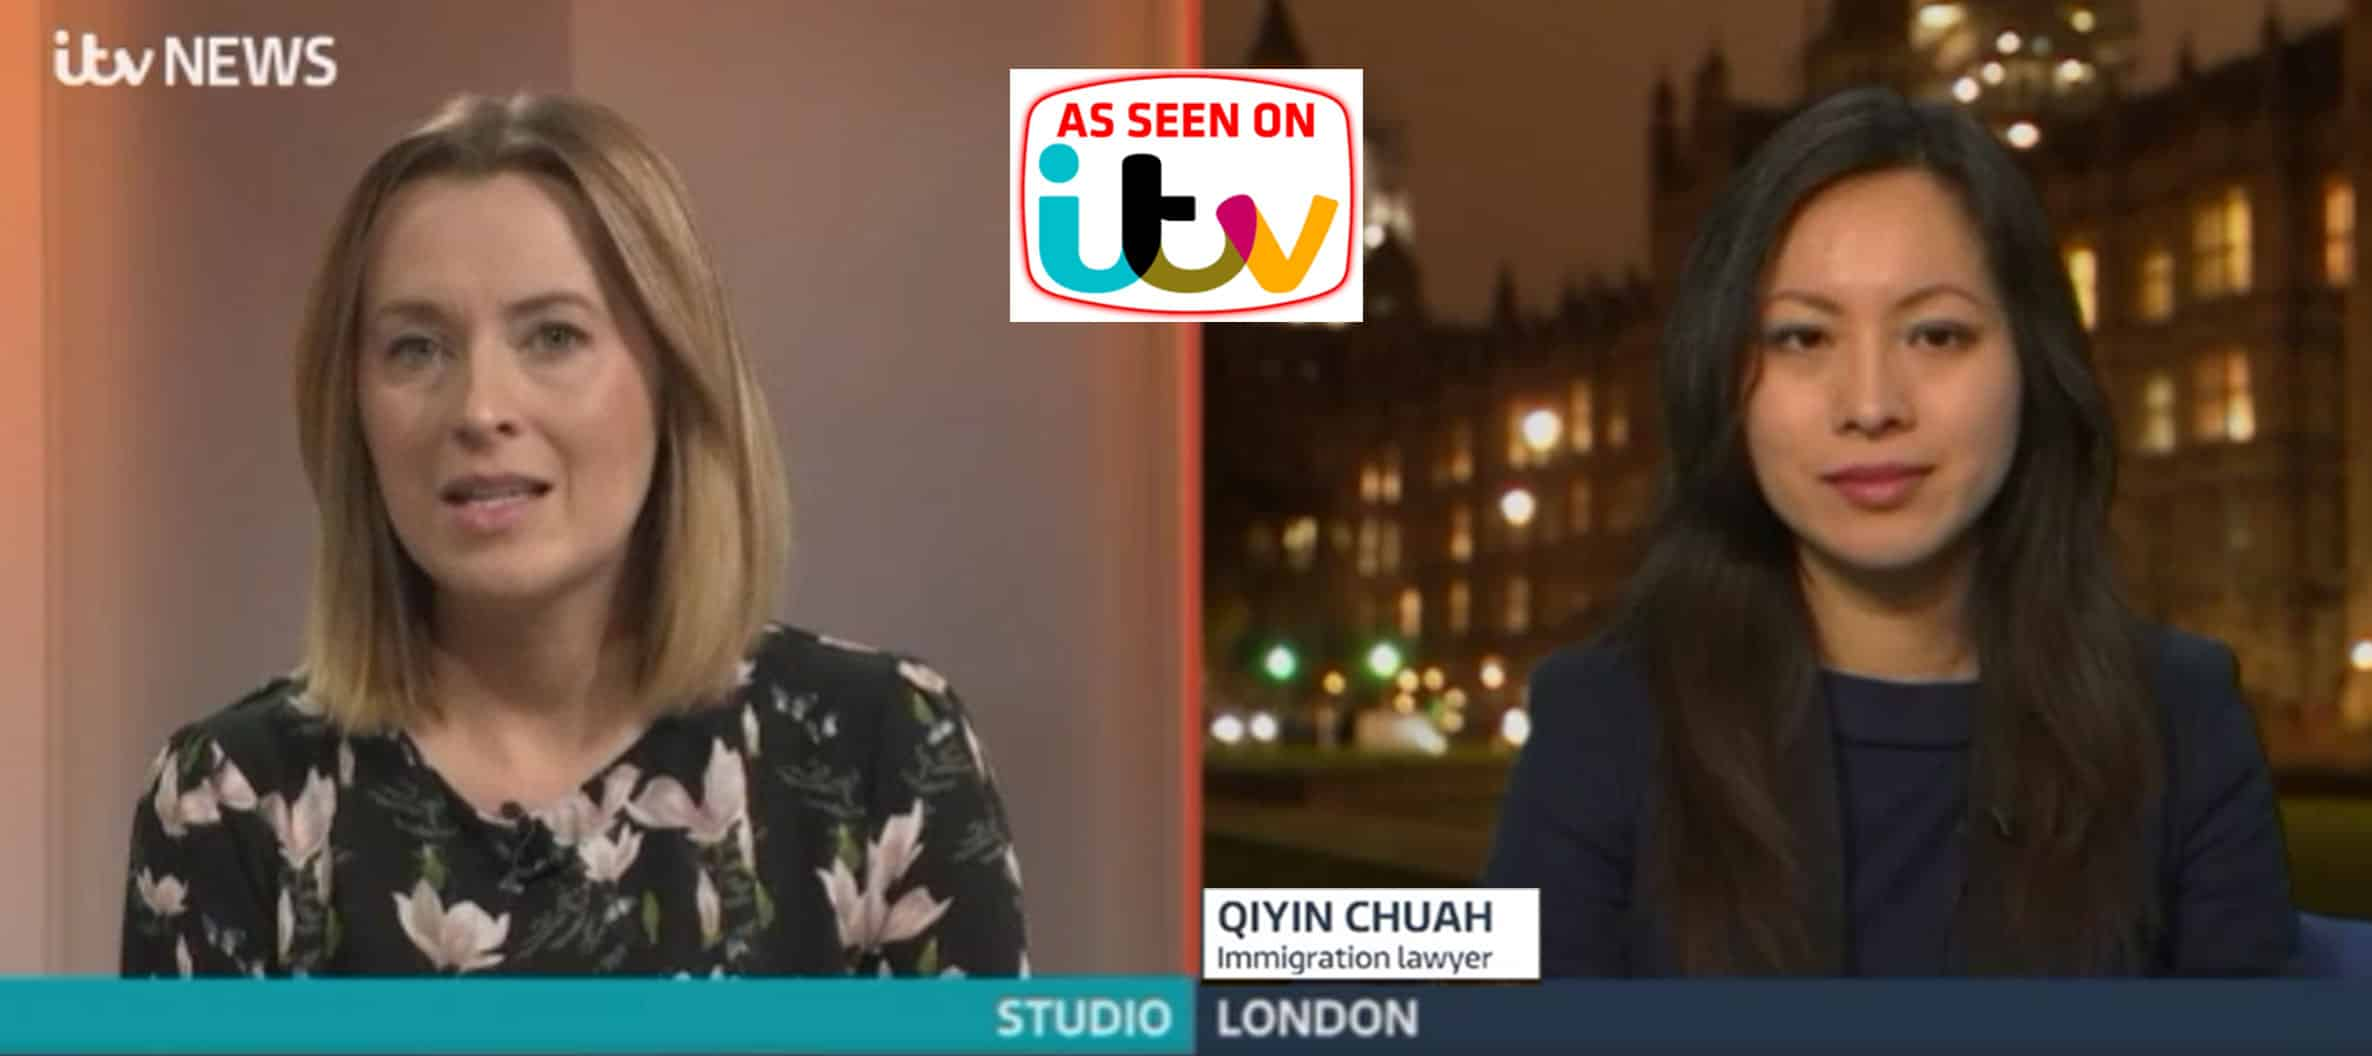 UK Immigration Lawyer - QC Immigration - Featured on ITV